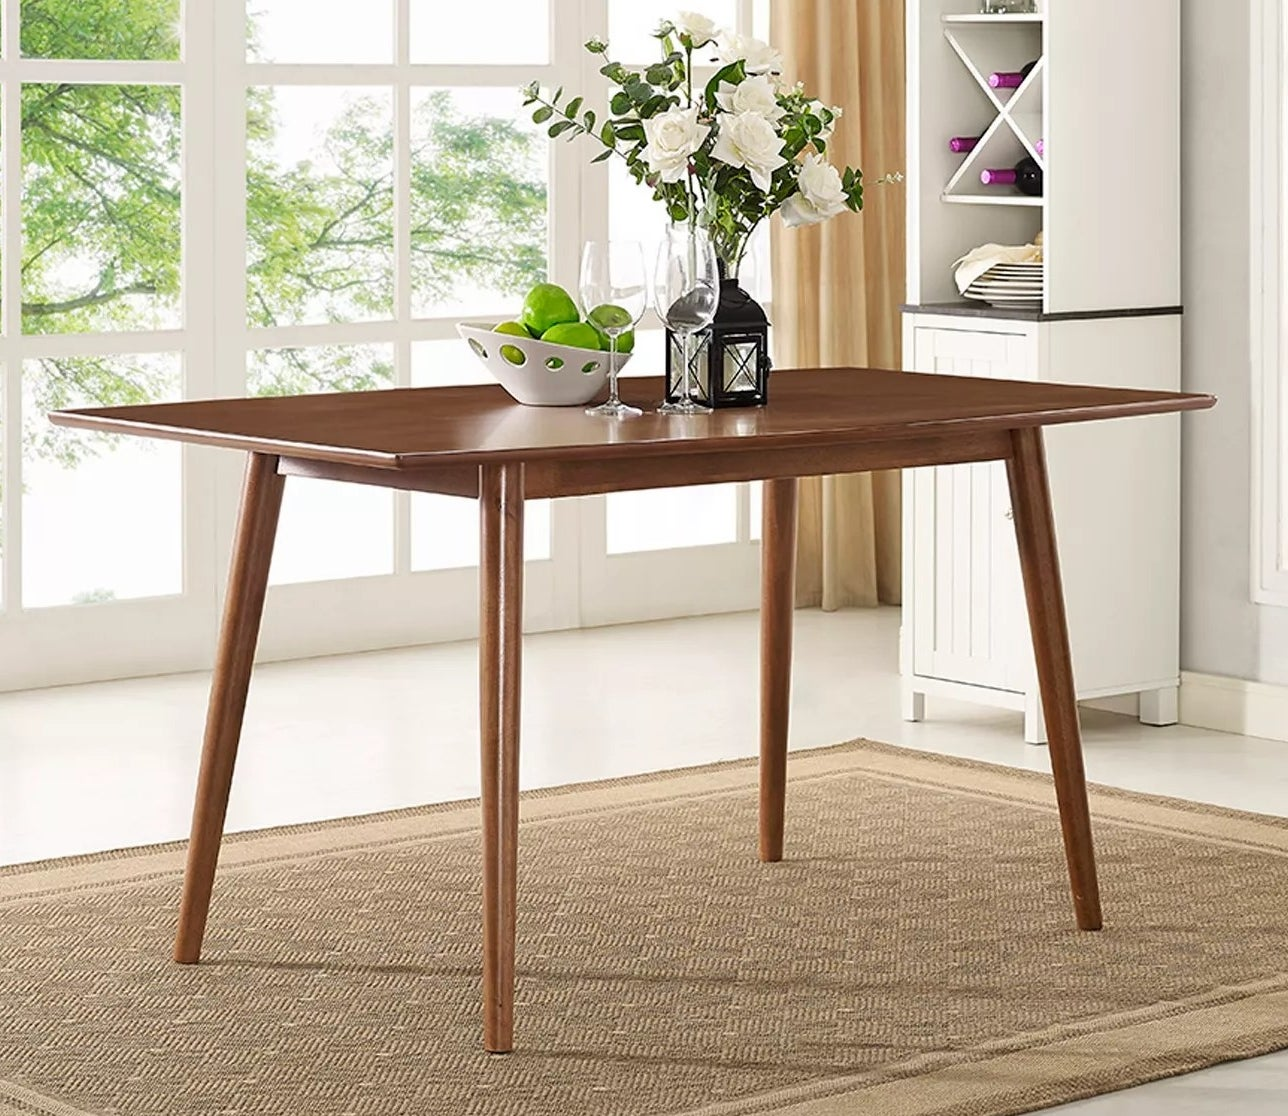 The mid-century dining table